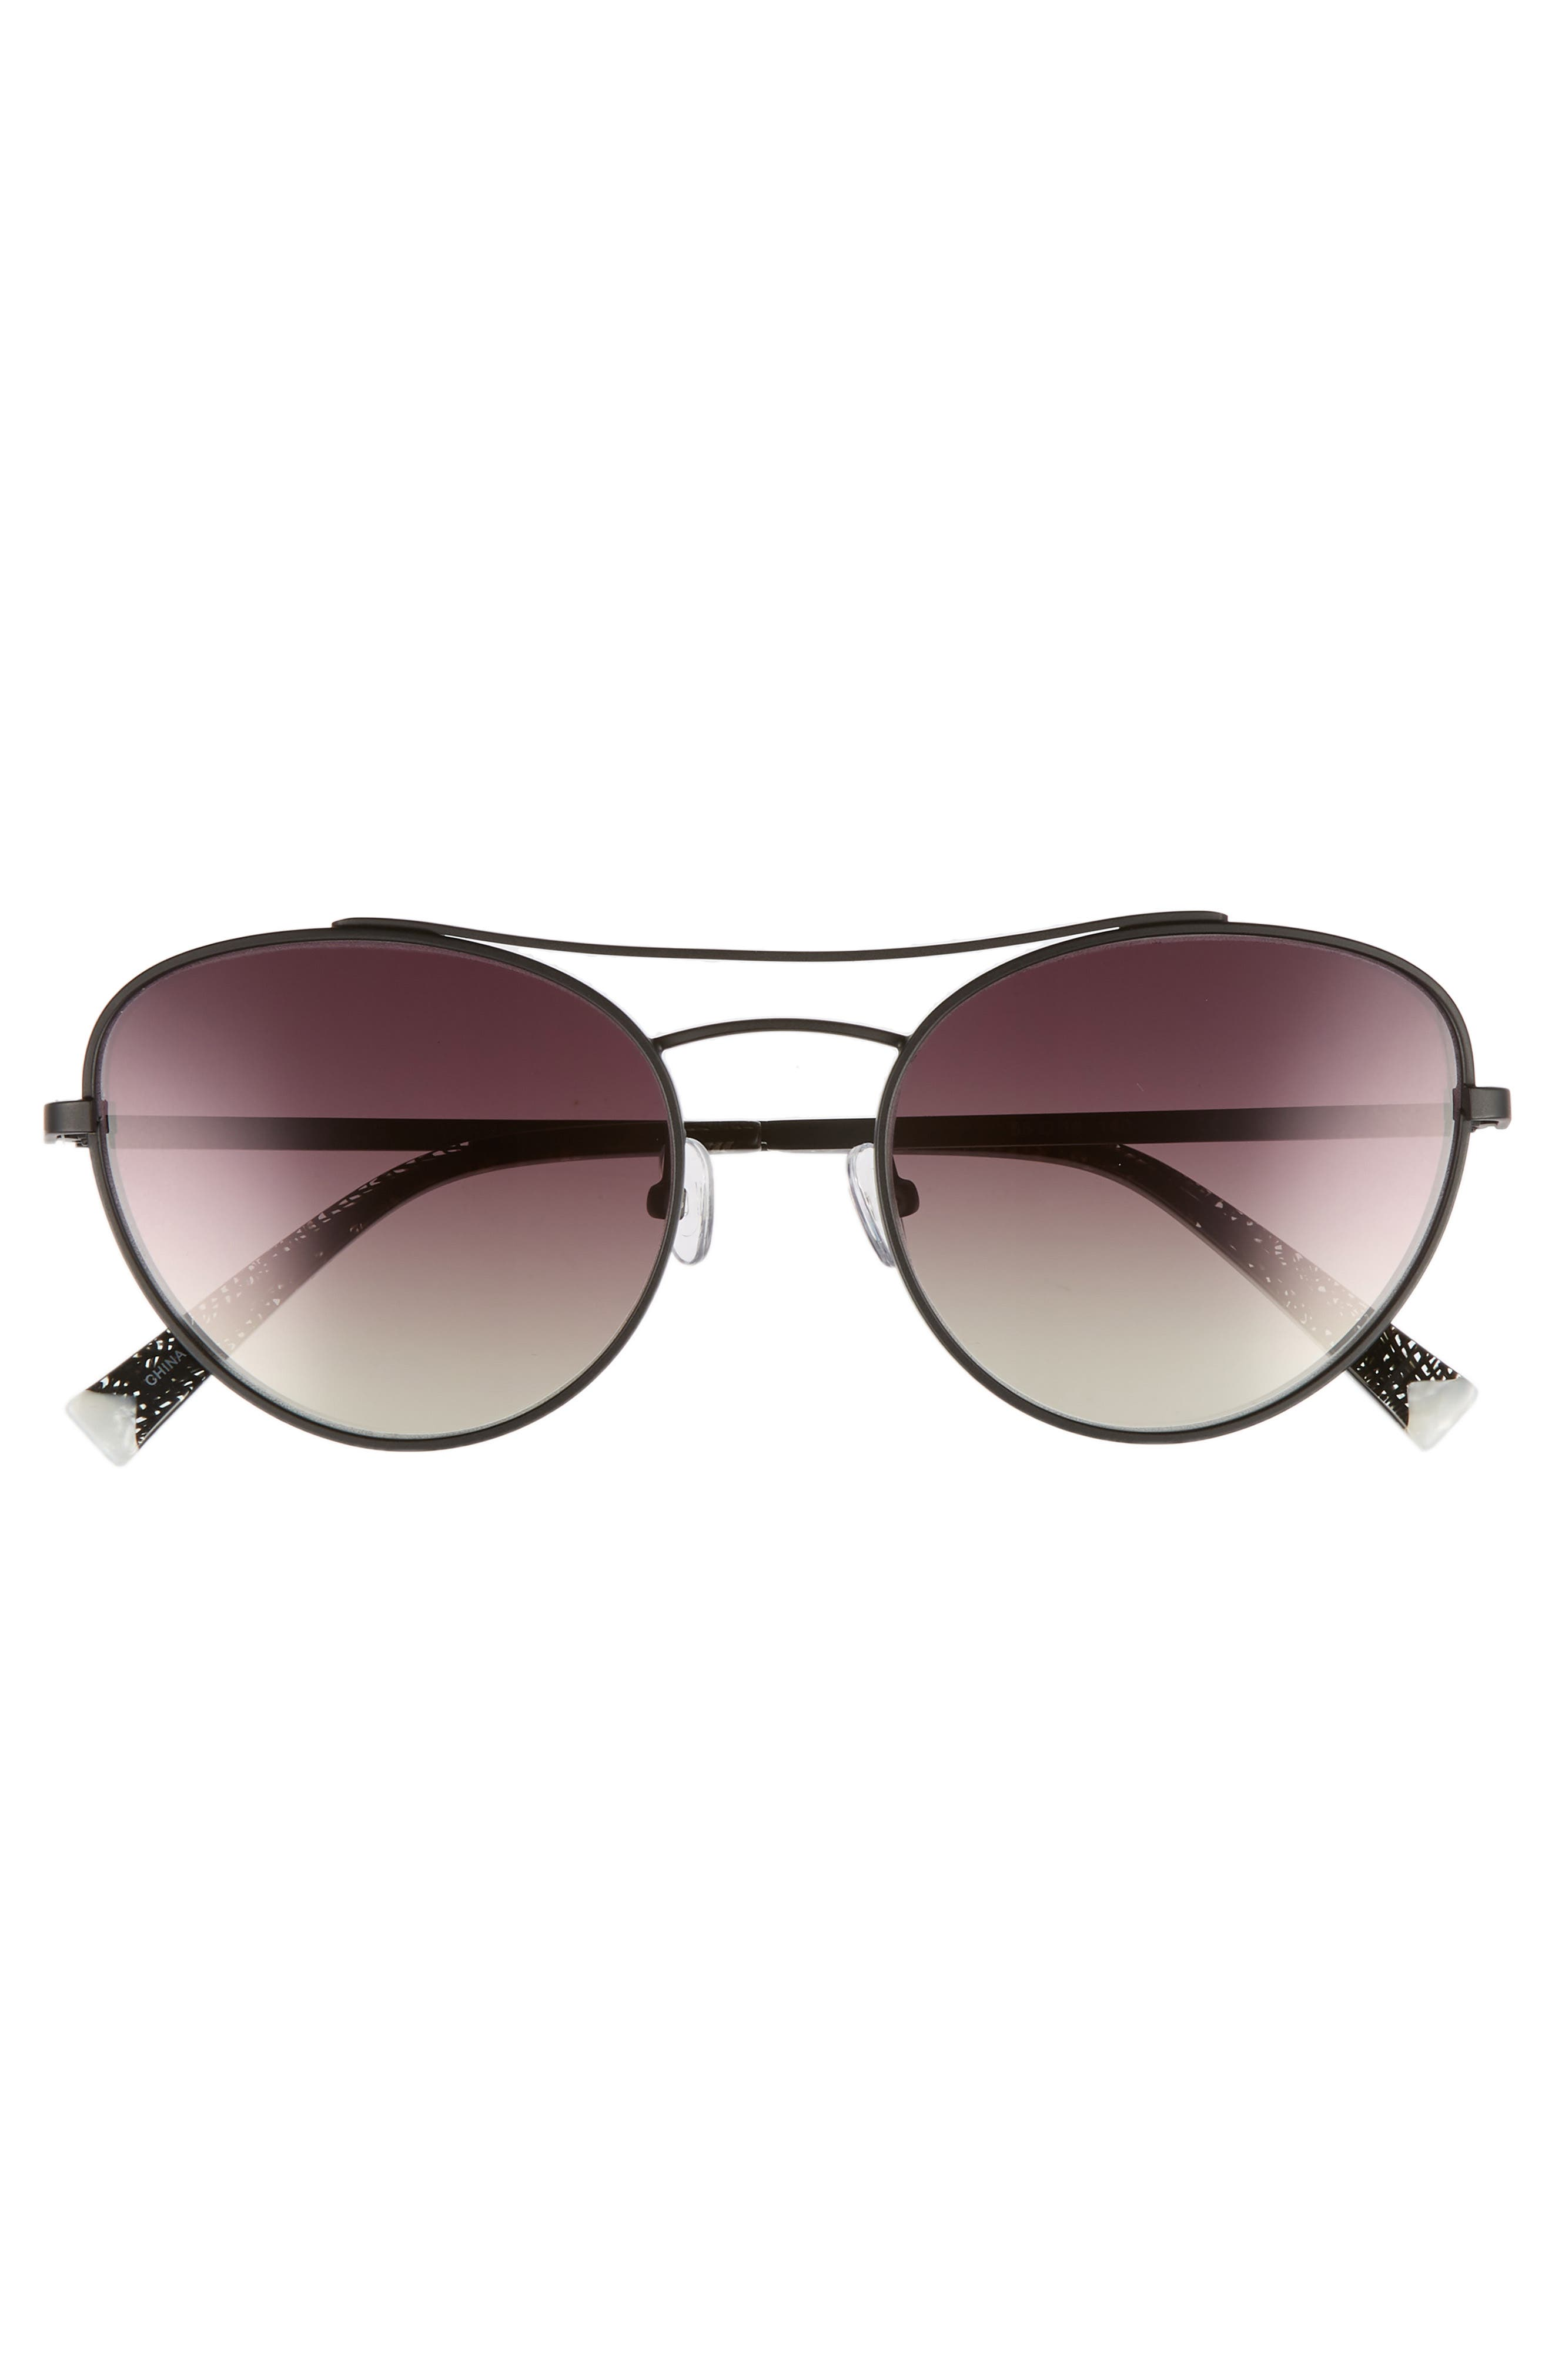 Yasmin 55mm Aviator Sunglasses,                             Alternate thumbnail 3, color,                             BLACK/ BROWN/ GOLD GRADIENT